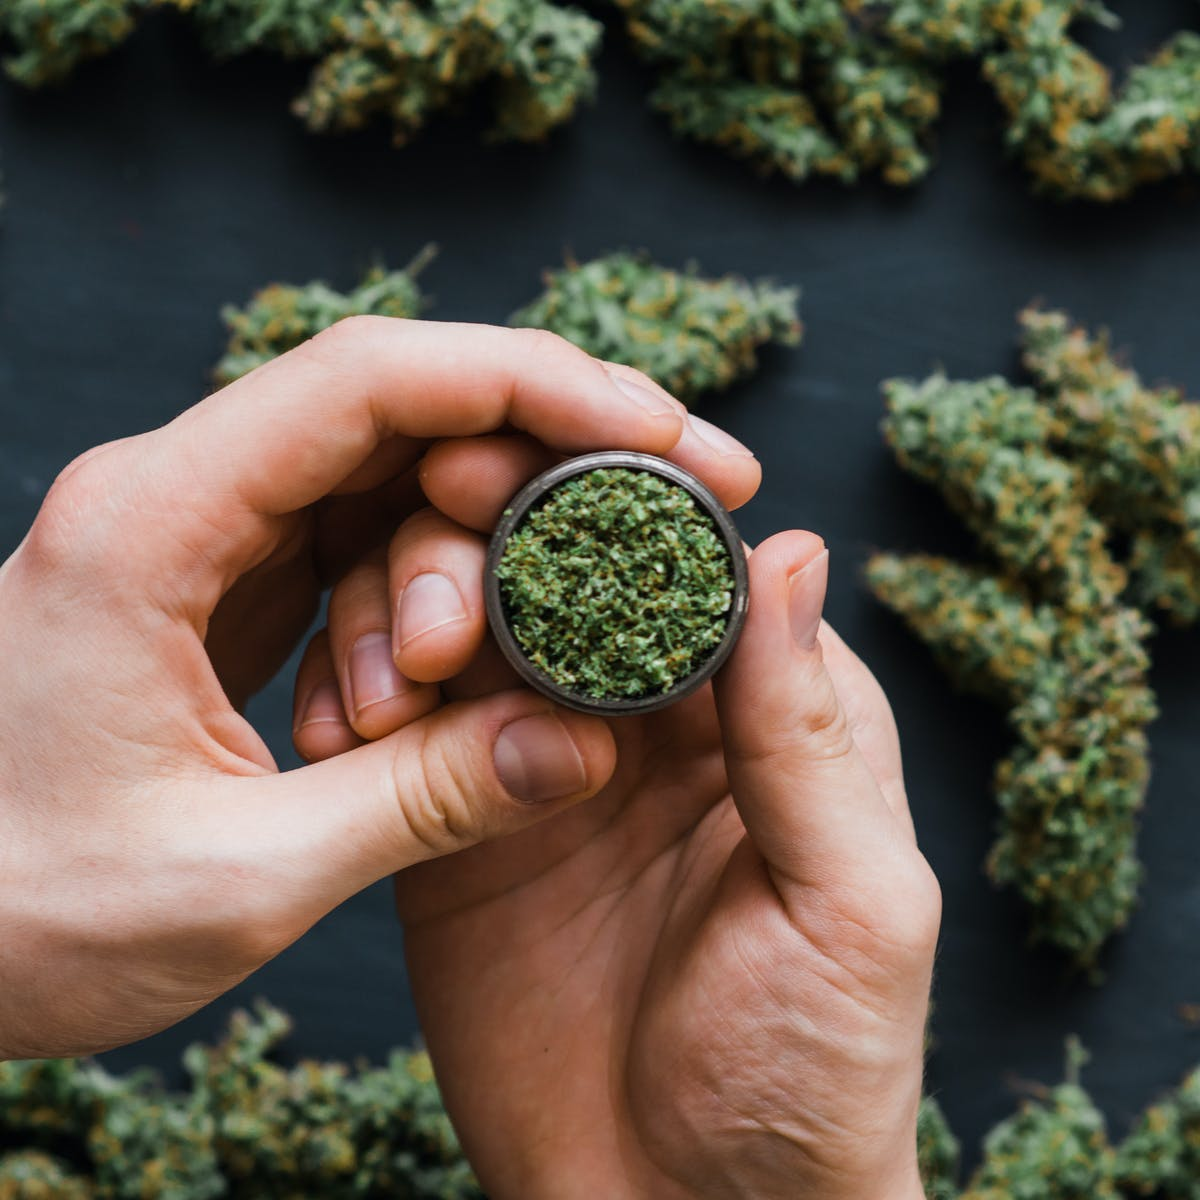 Does weed hurt or help PTSD sufferers?